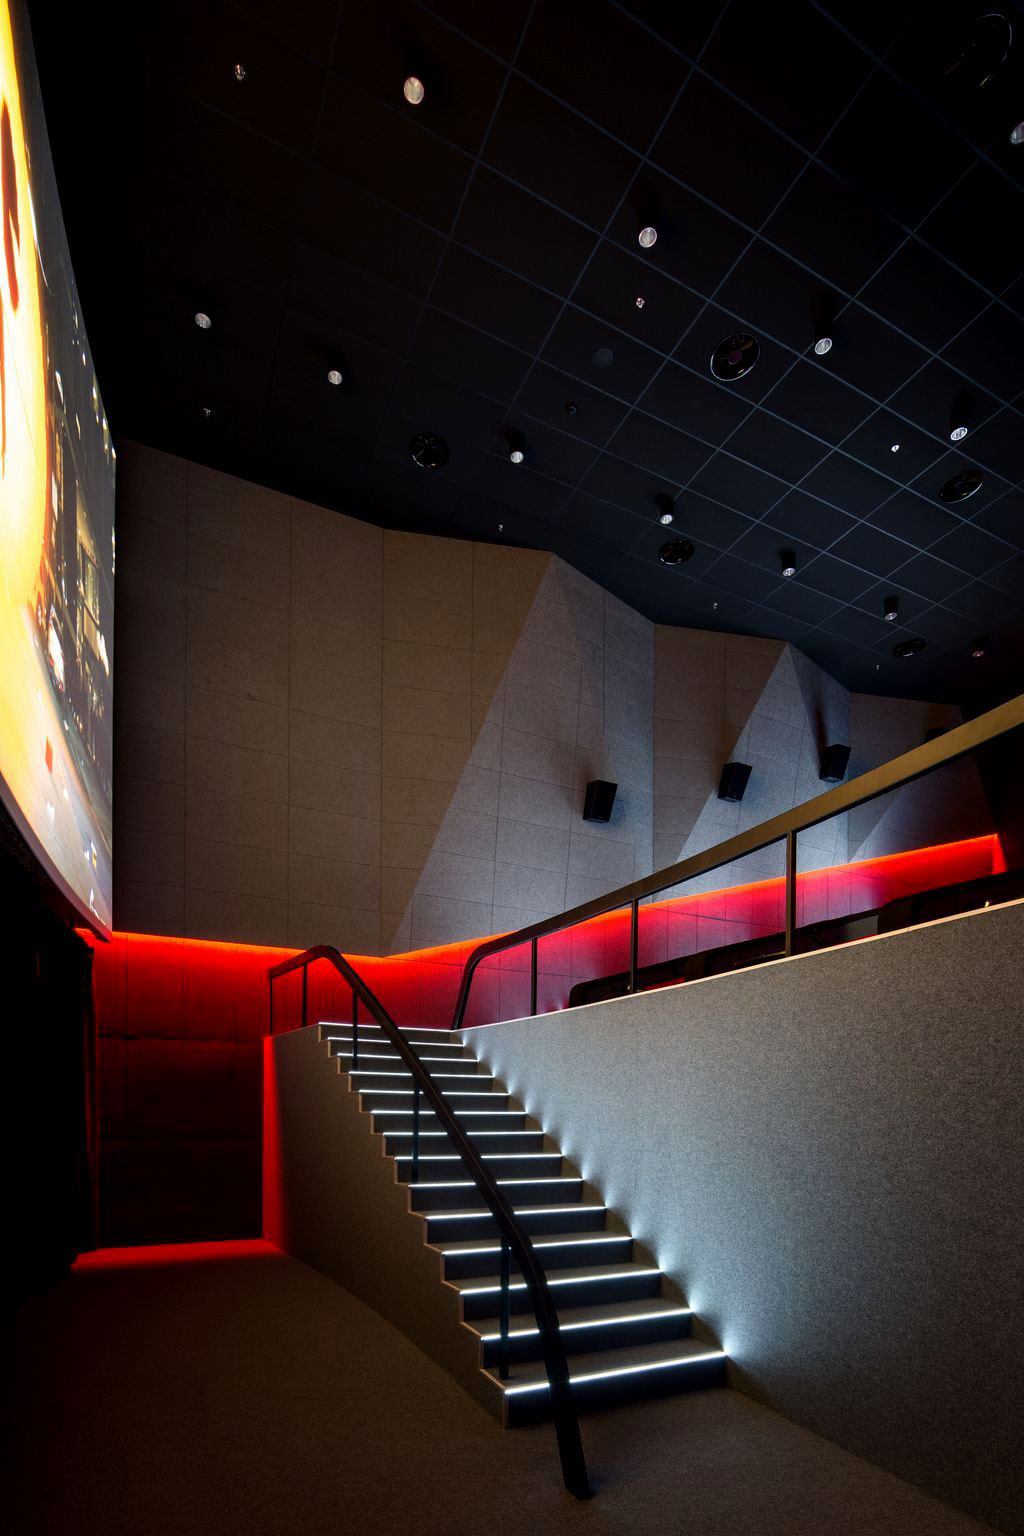 Multiplex Atmocphere Cinema On Behance